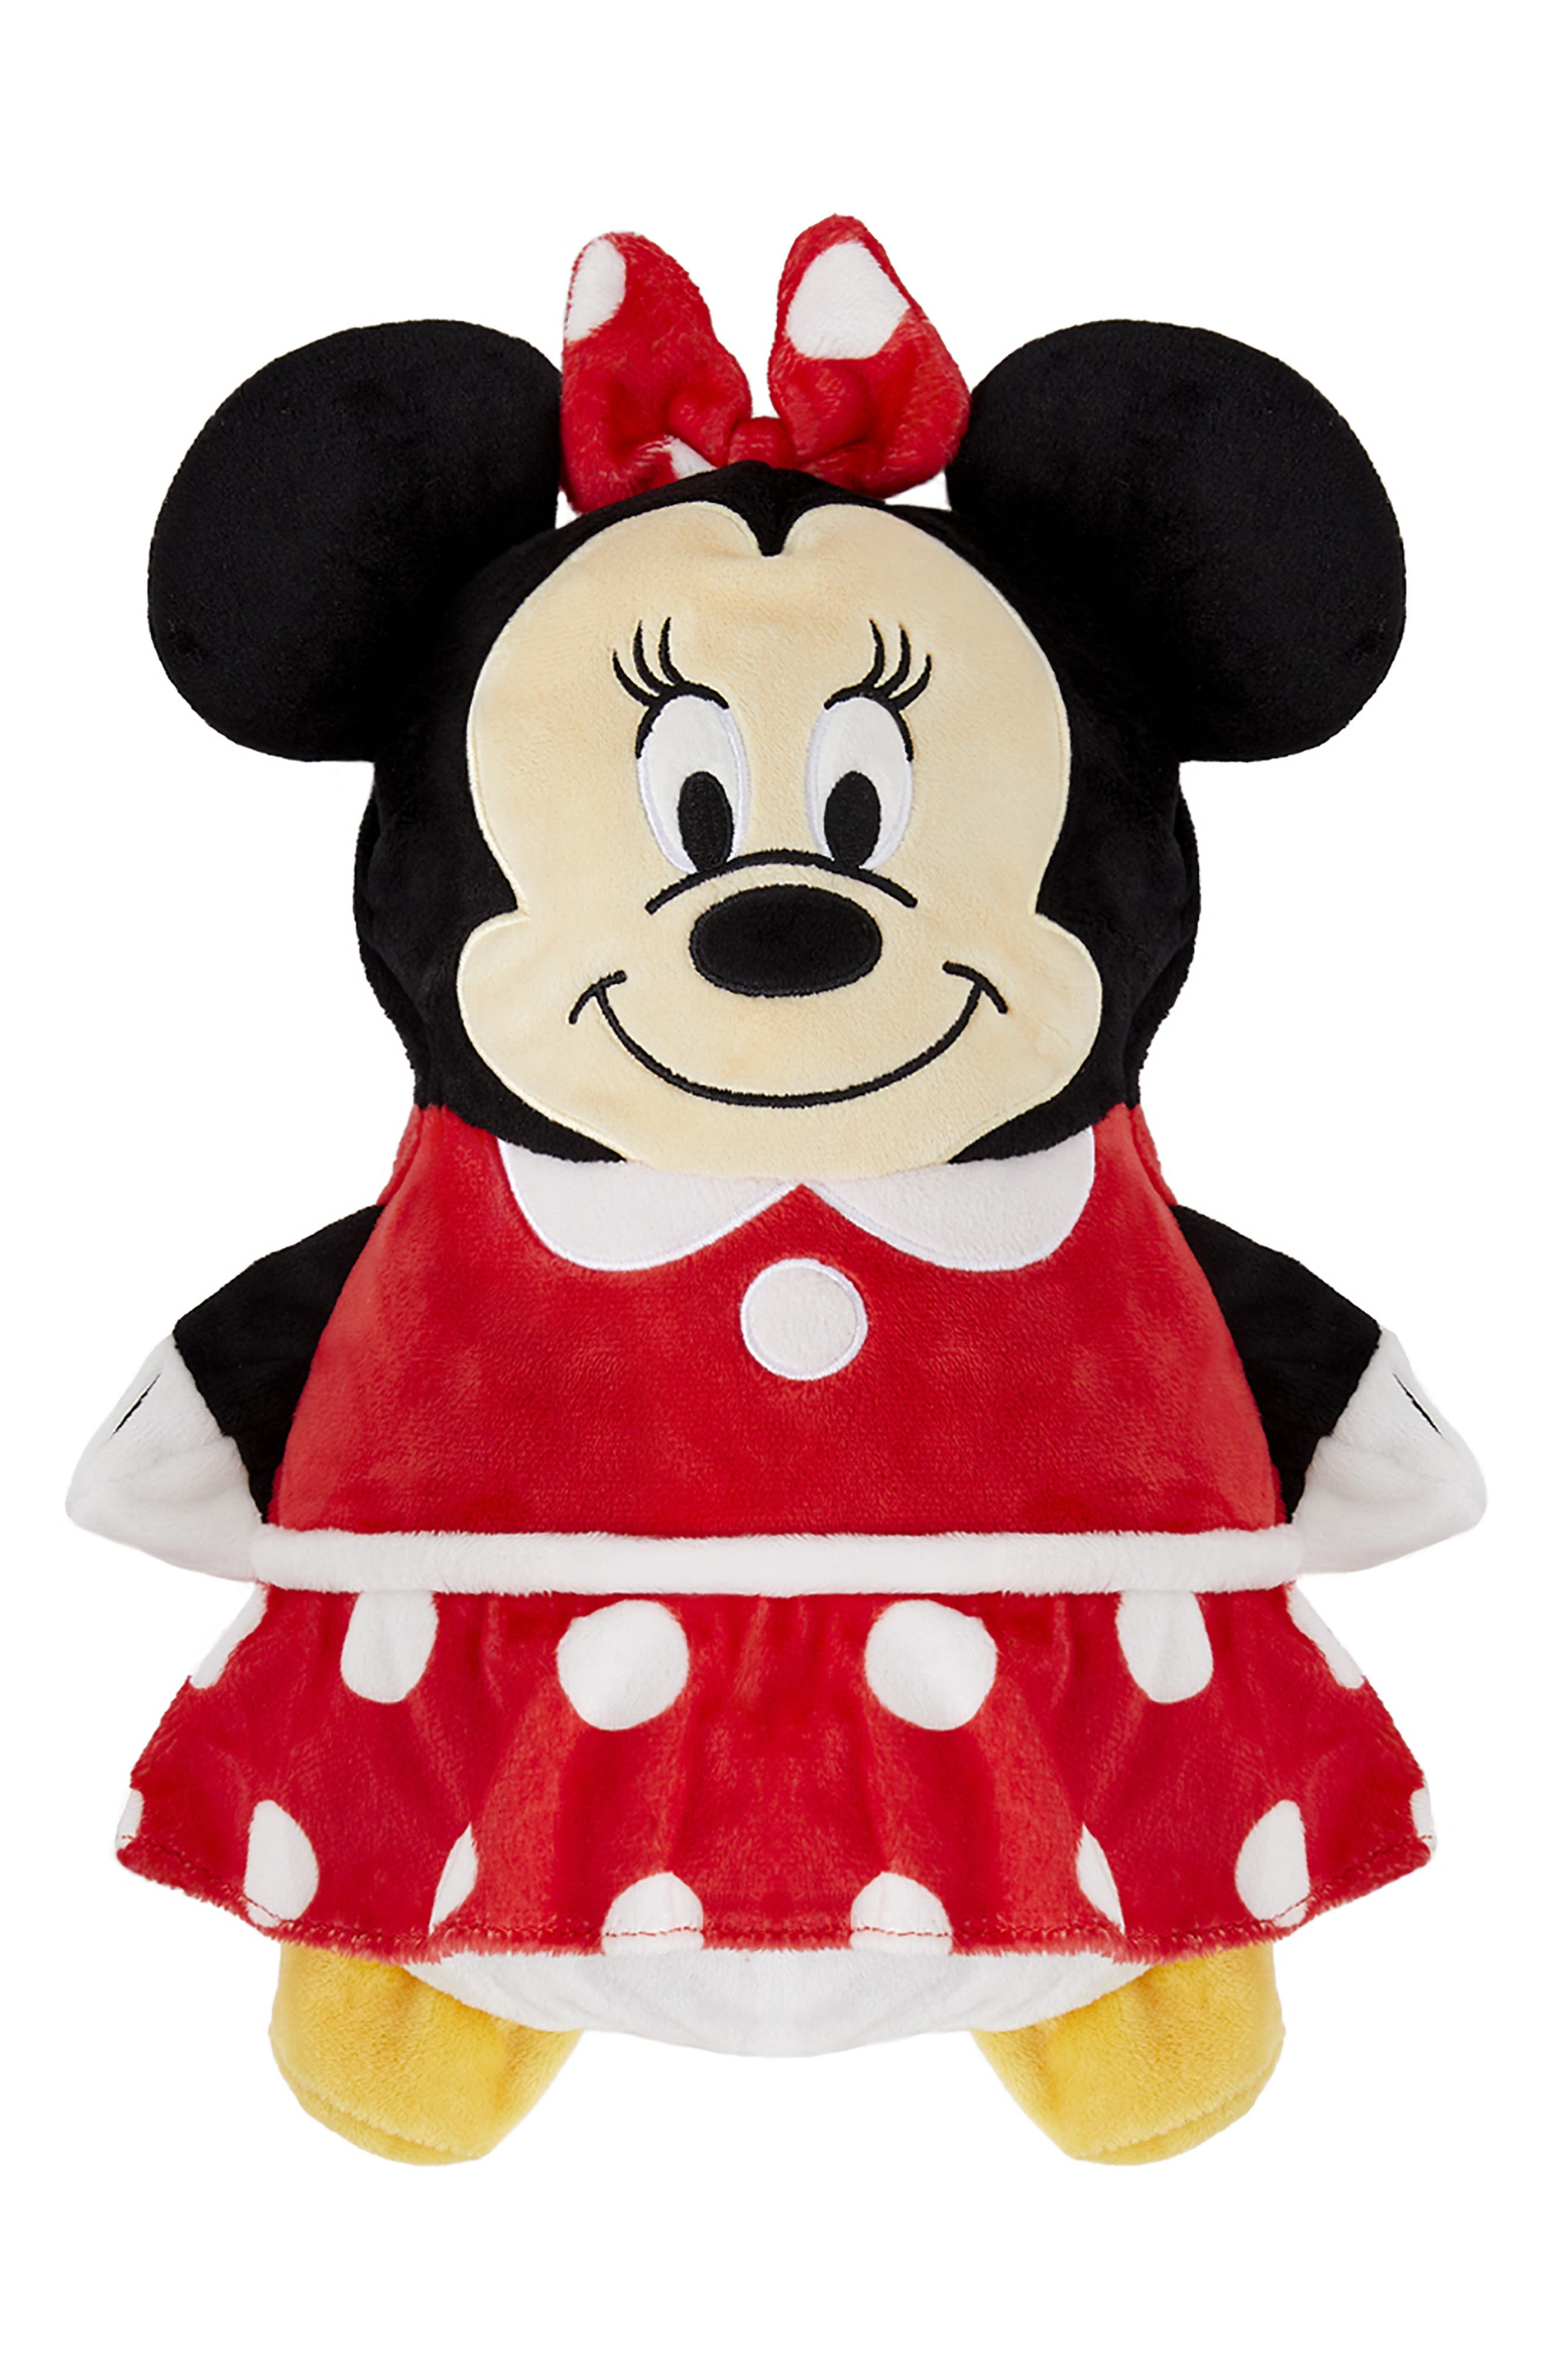 CUBCOATS, Disney Minnie Mouse 2-in-1 Stuffed Animal Hoodie, Main thumbnail 1, color, 001